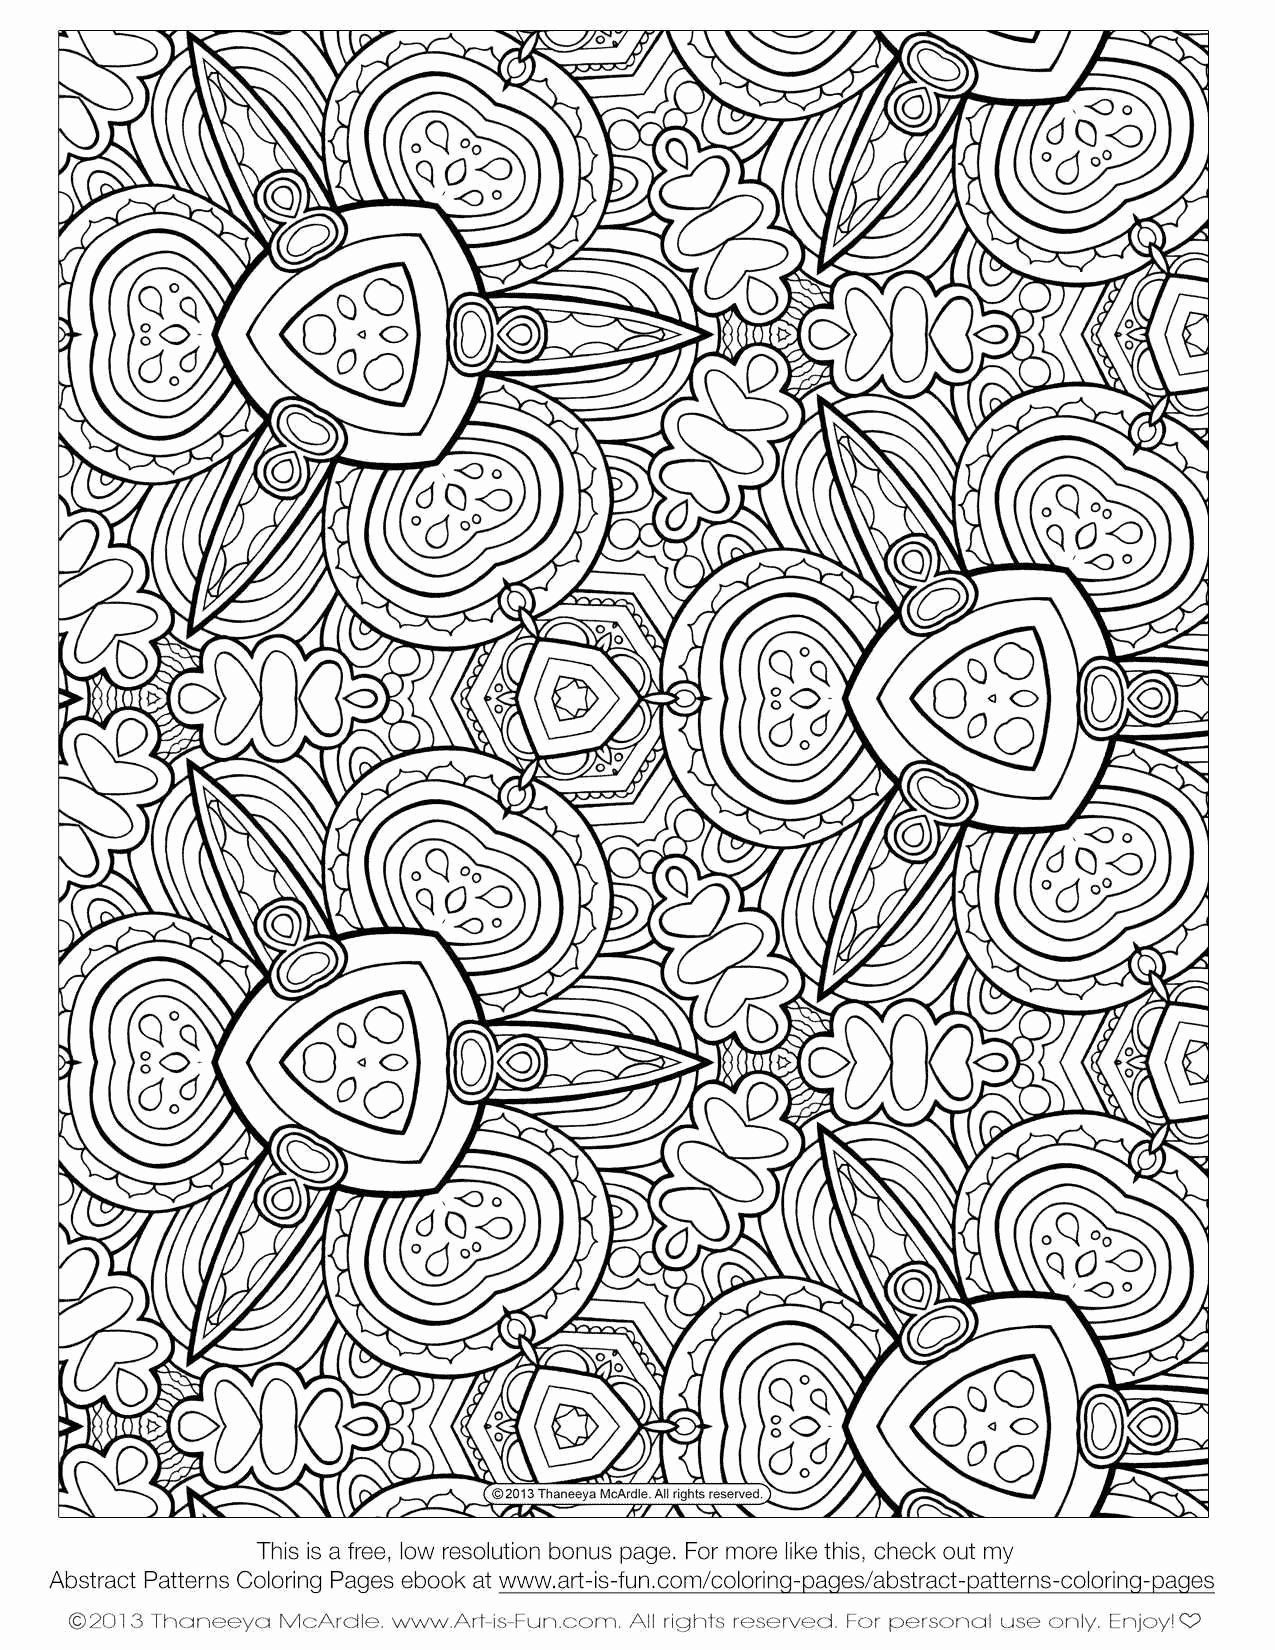 Coloring Pages Games Free Online Lovely Coloring Pages 40 Awesome Illuminated Manuscrip Abstract Coloring Pages Geometric Coloring Pages Pattern Coloring Pages